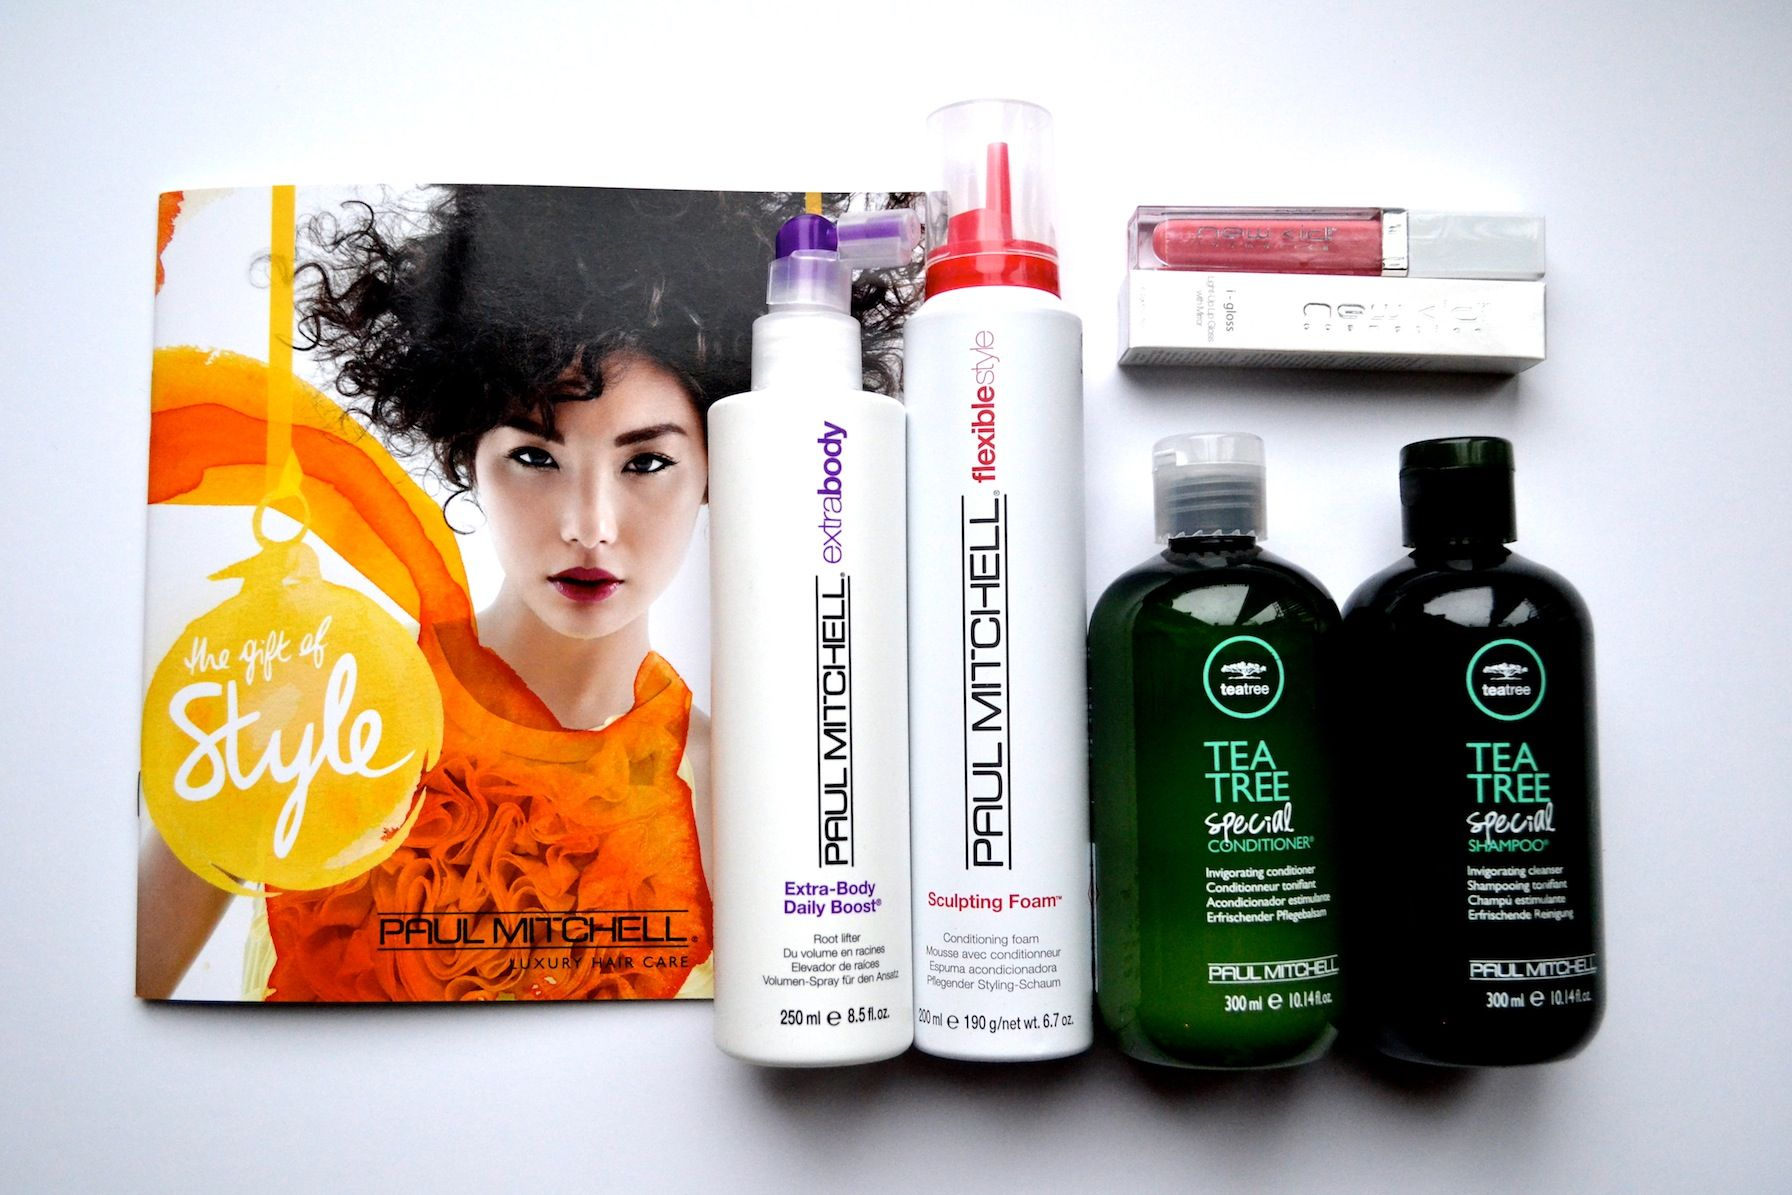 Paul Mitchell Gift of Style Evening gary hedley newcastle blo dry styling bar goodie bag